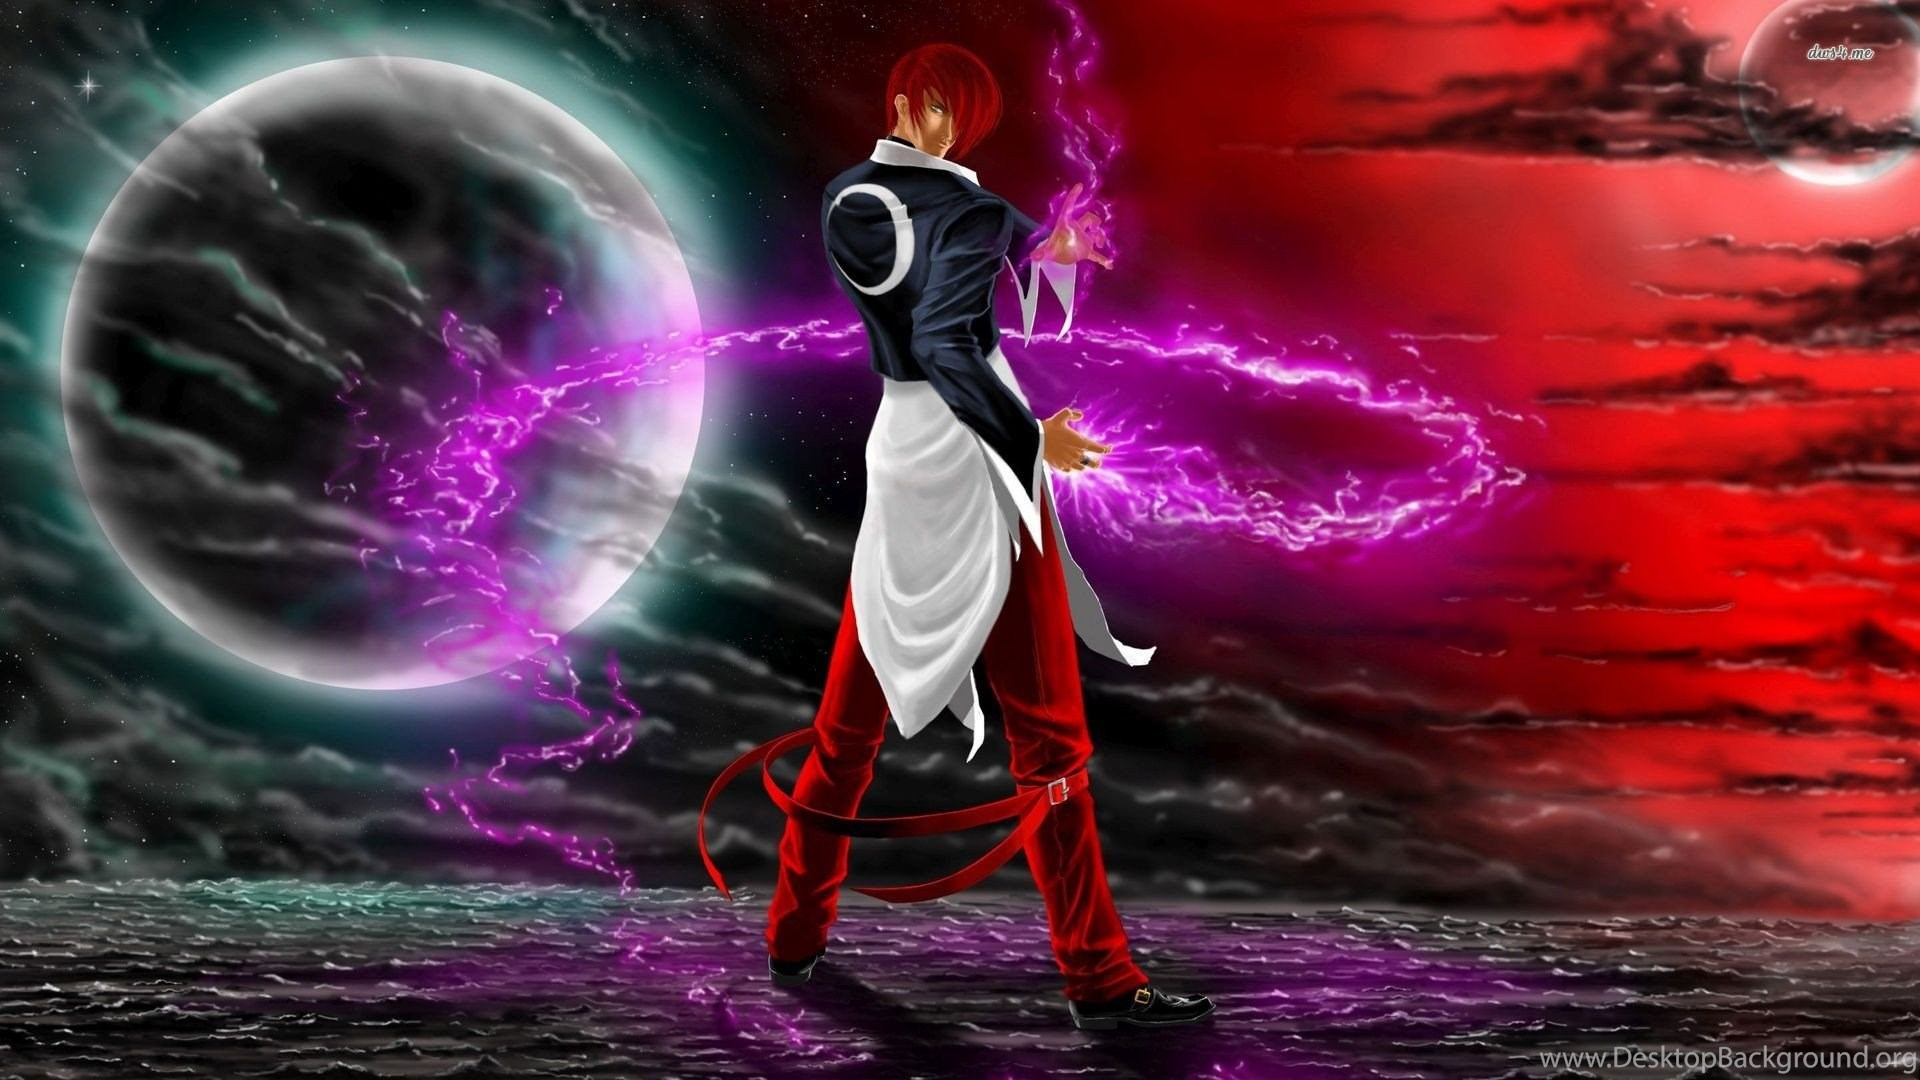 Iori Yagami The King Of Fighters Game Wallpapers 1920x1080 1080p